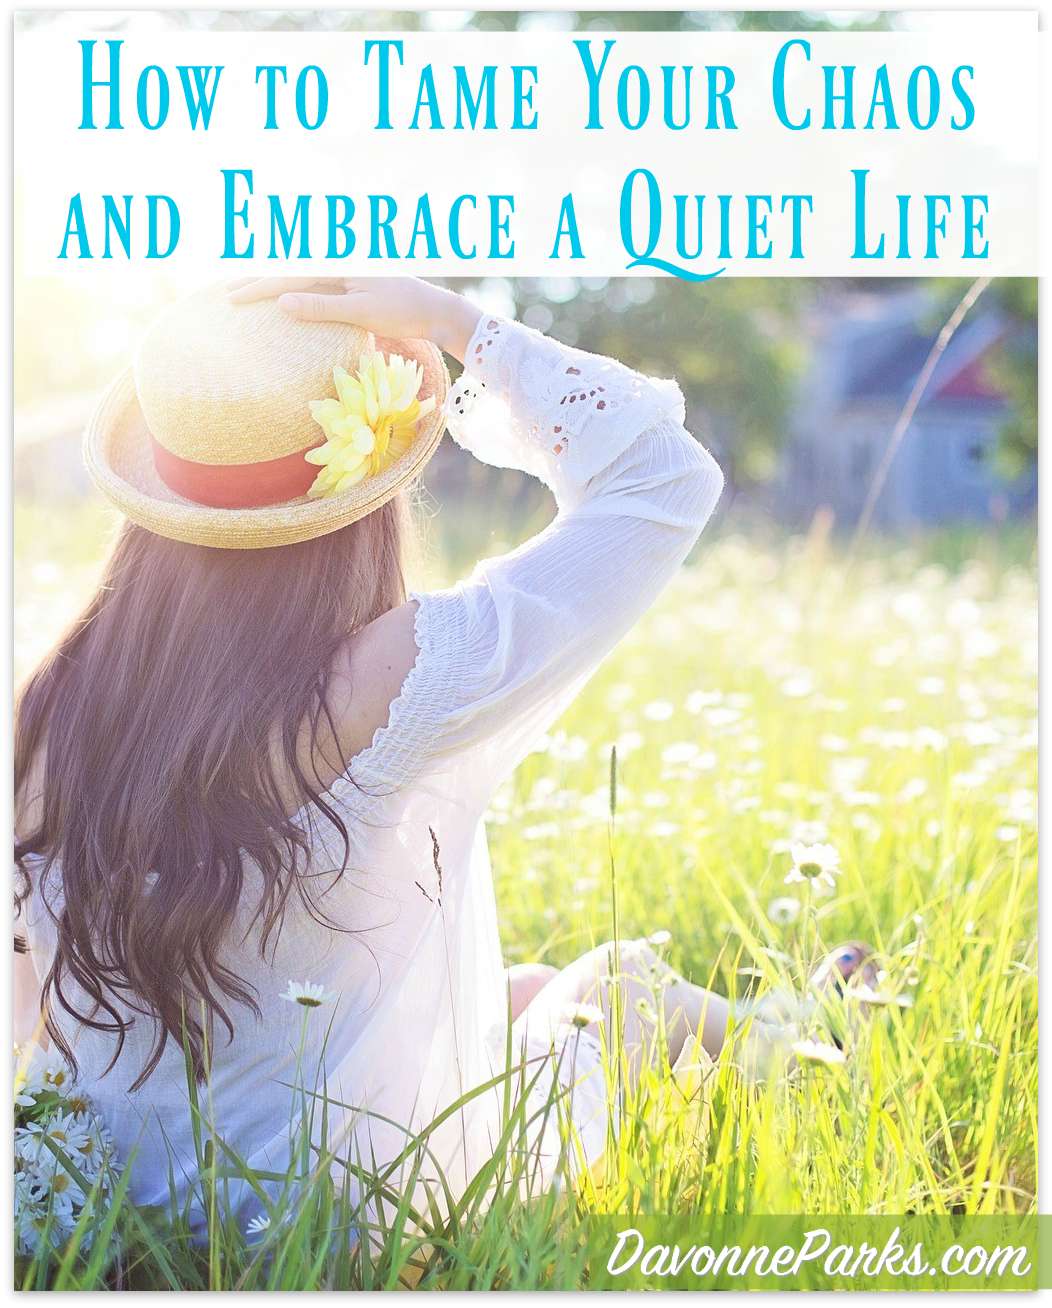 Are You Satisfied with a Quiet Life?